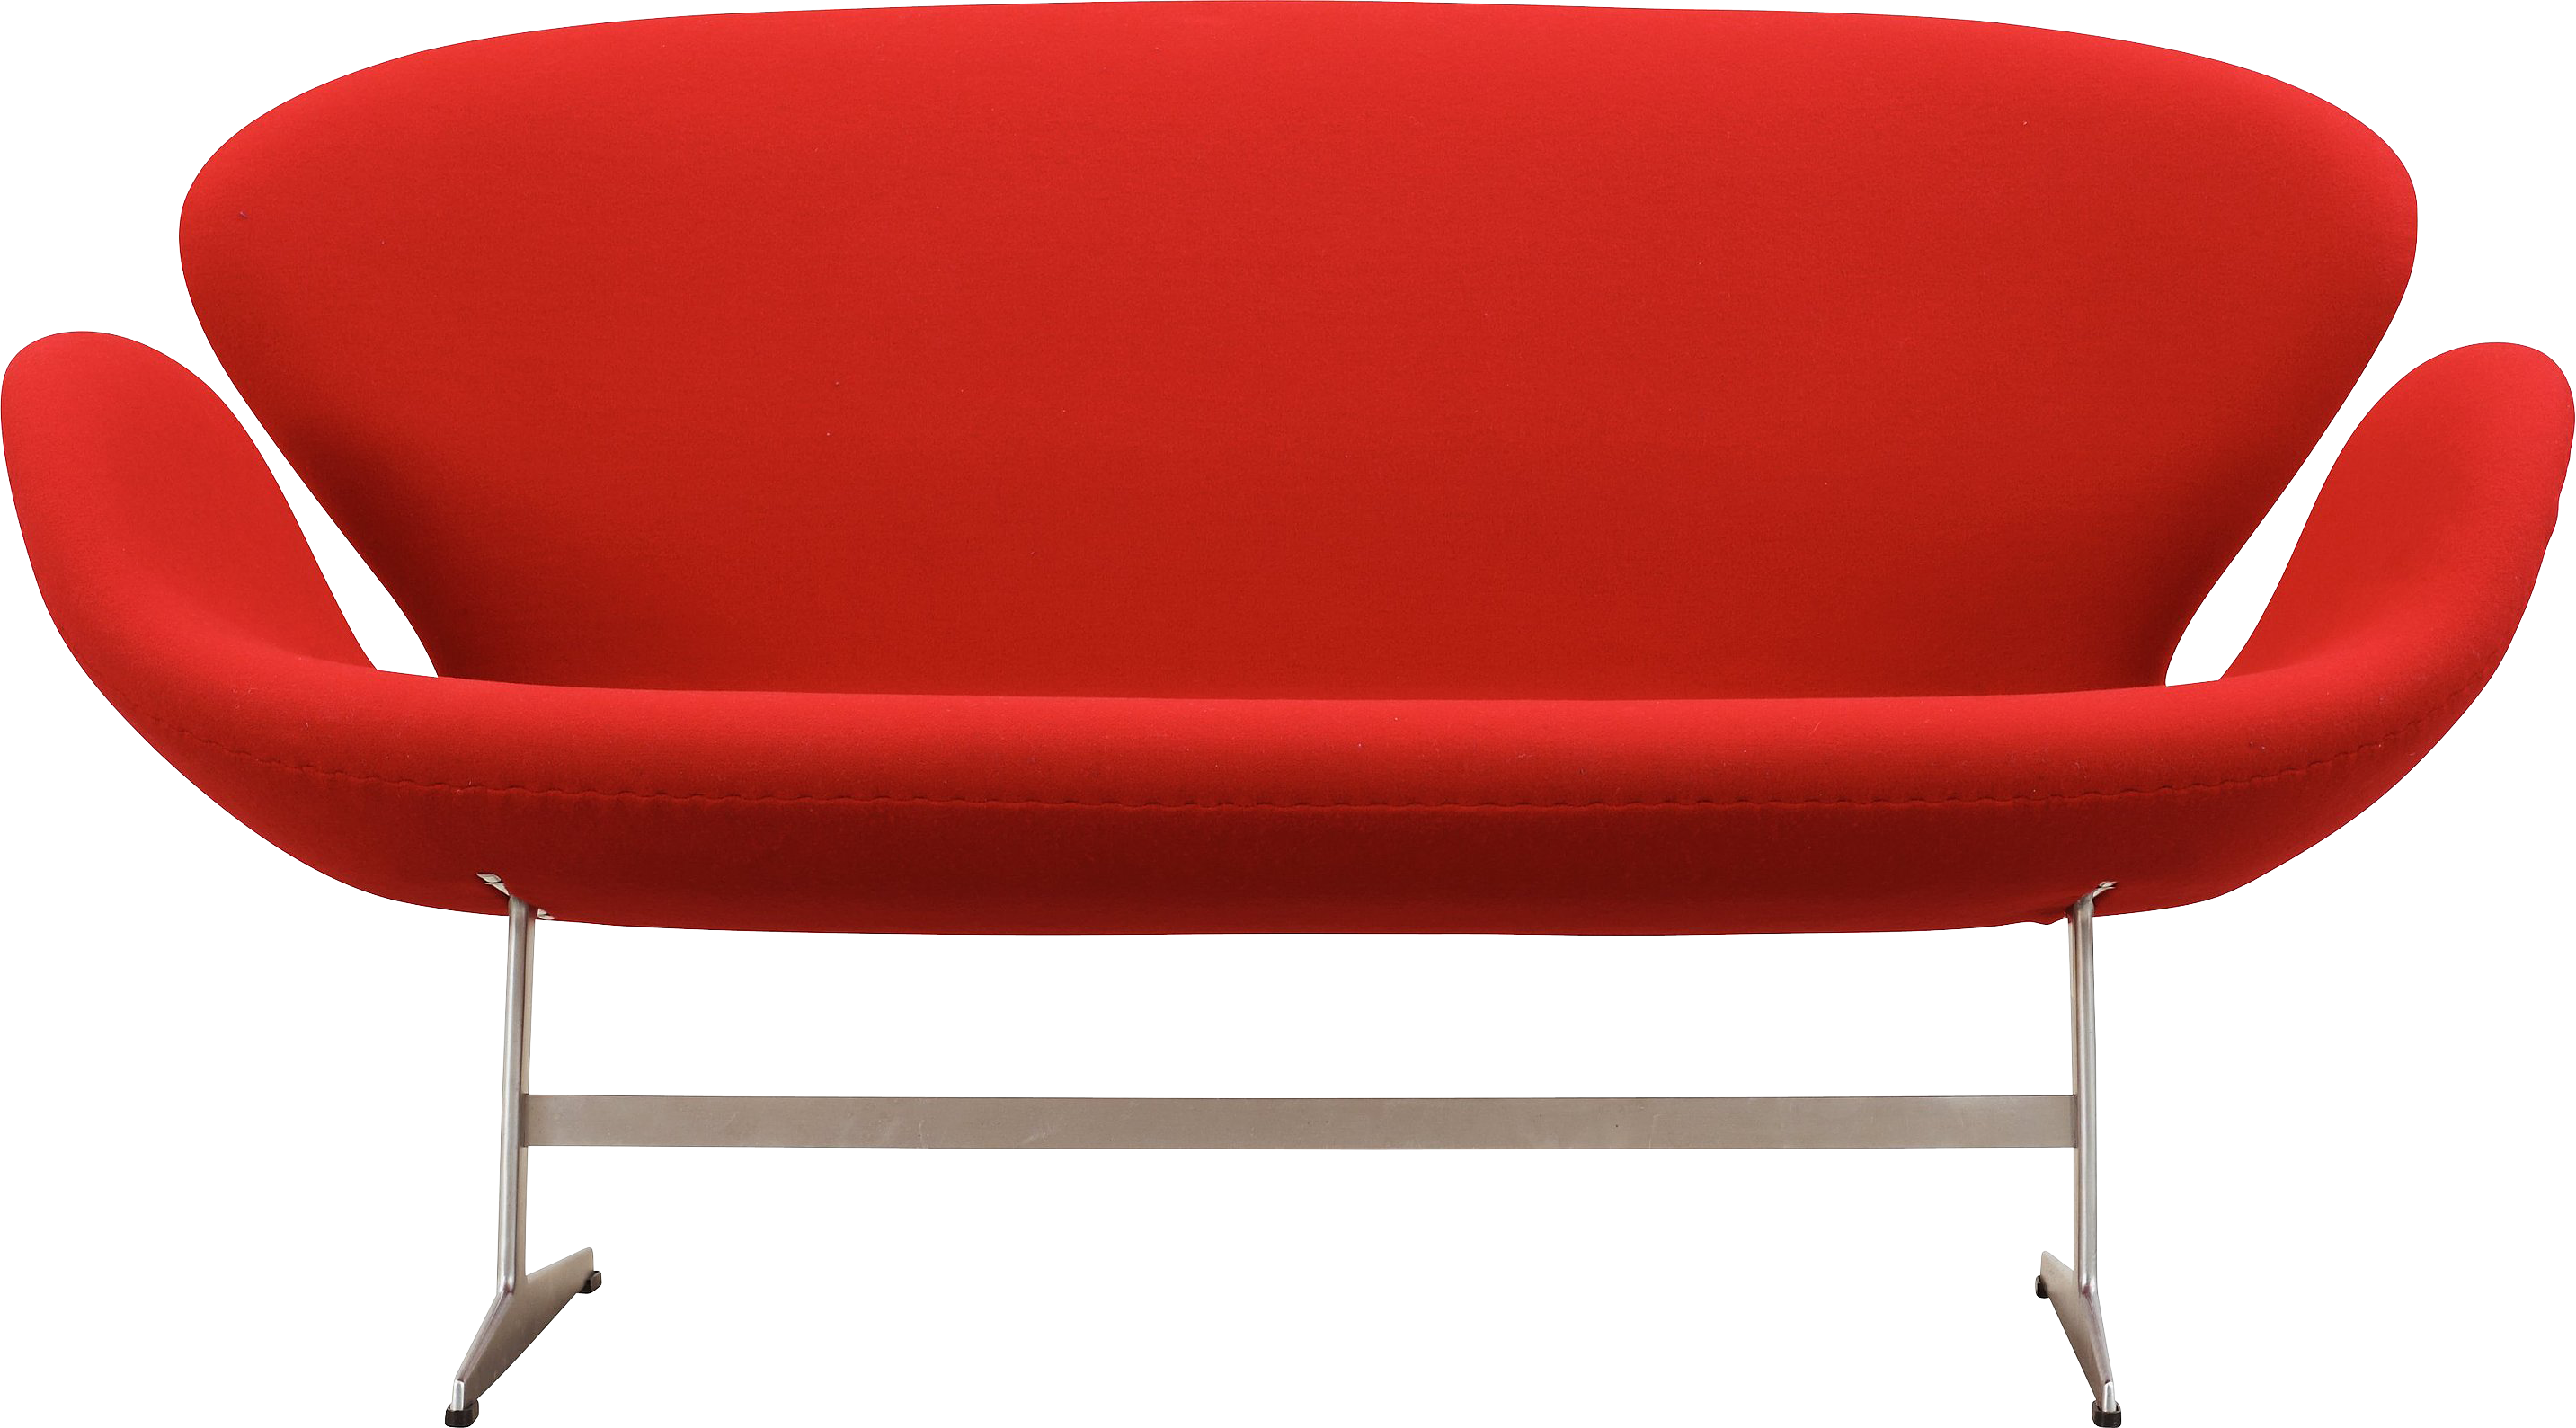 Sofa for photoshop download free clipart with a transparent.